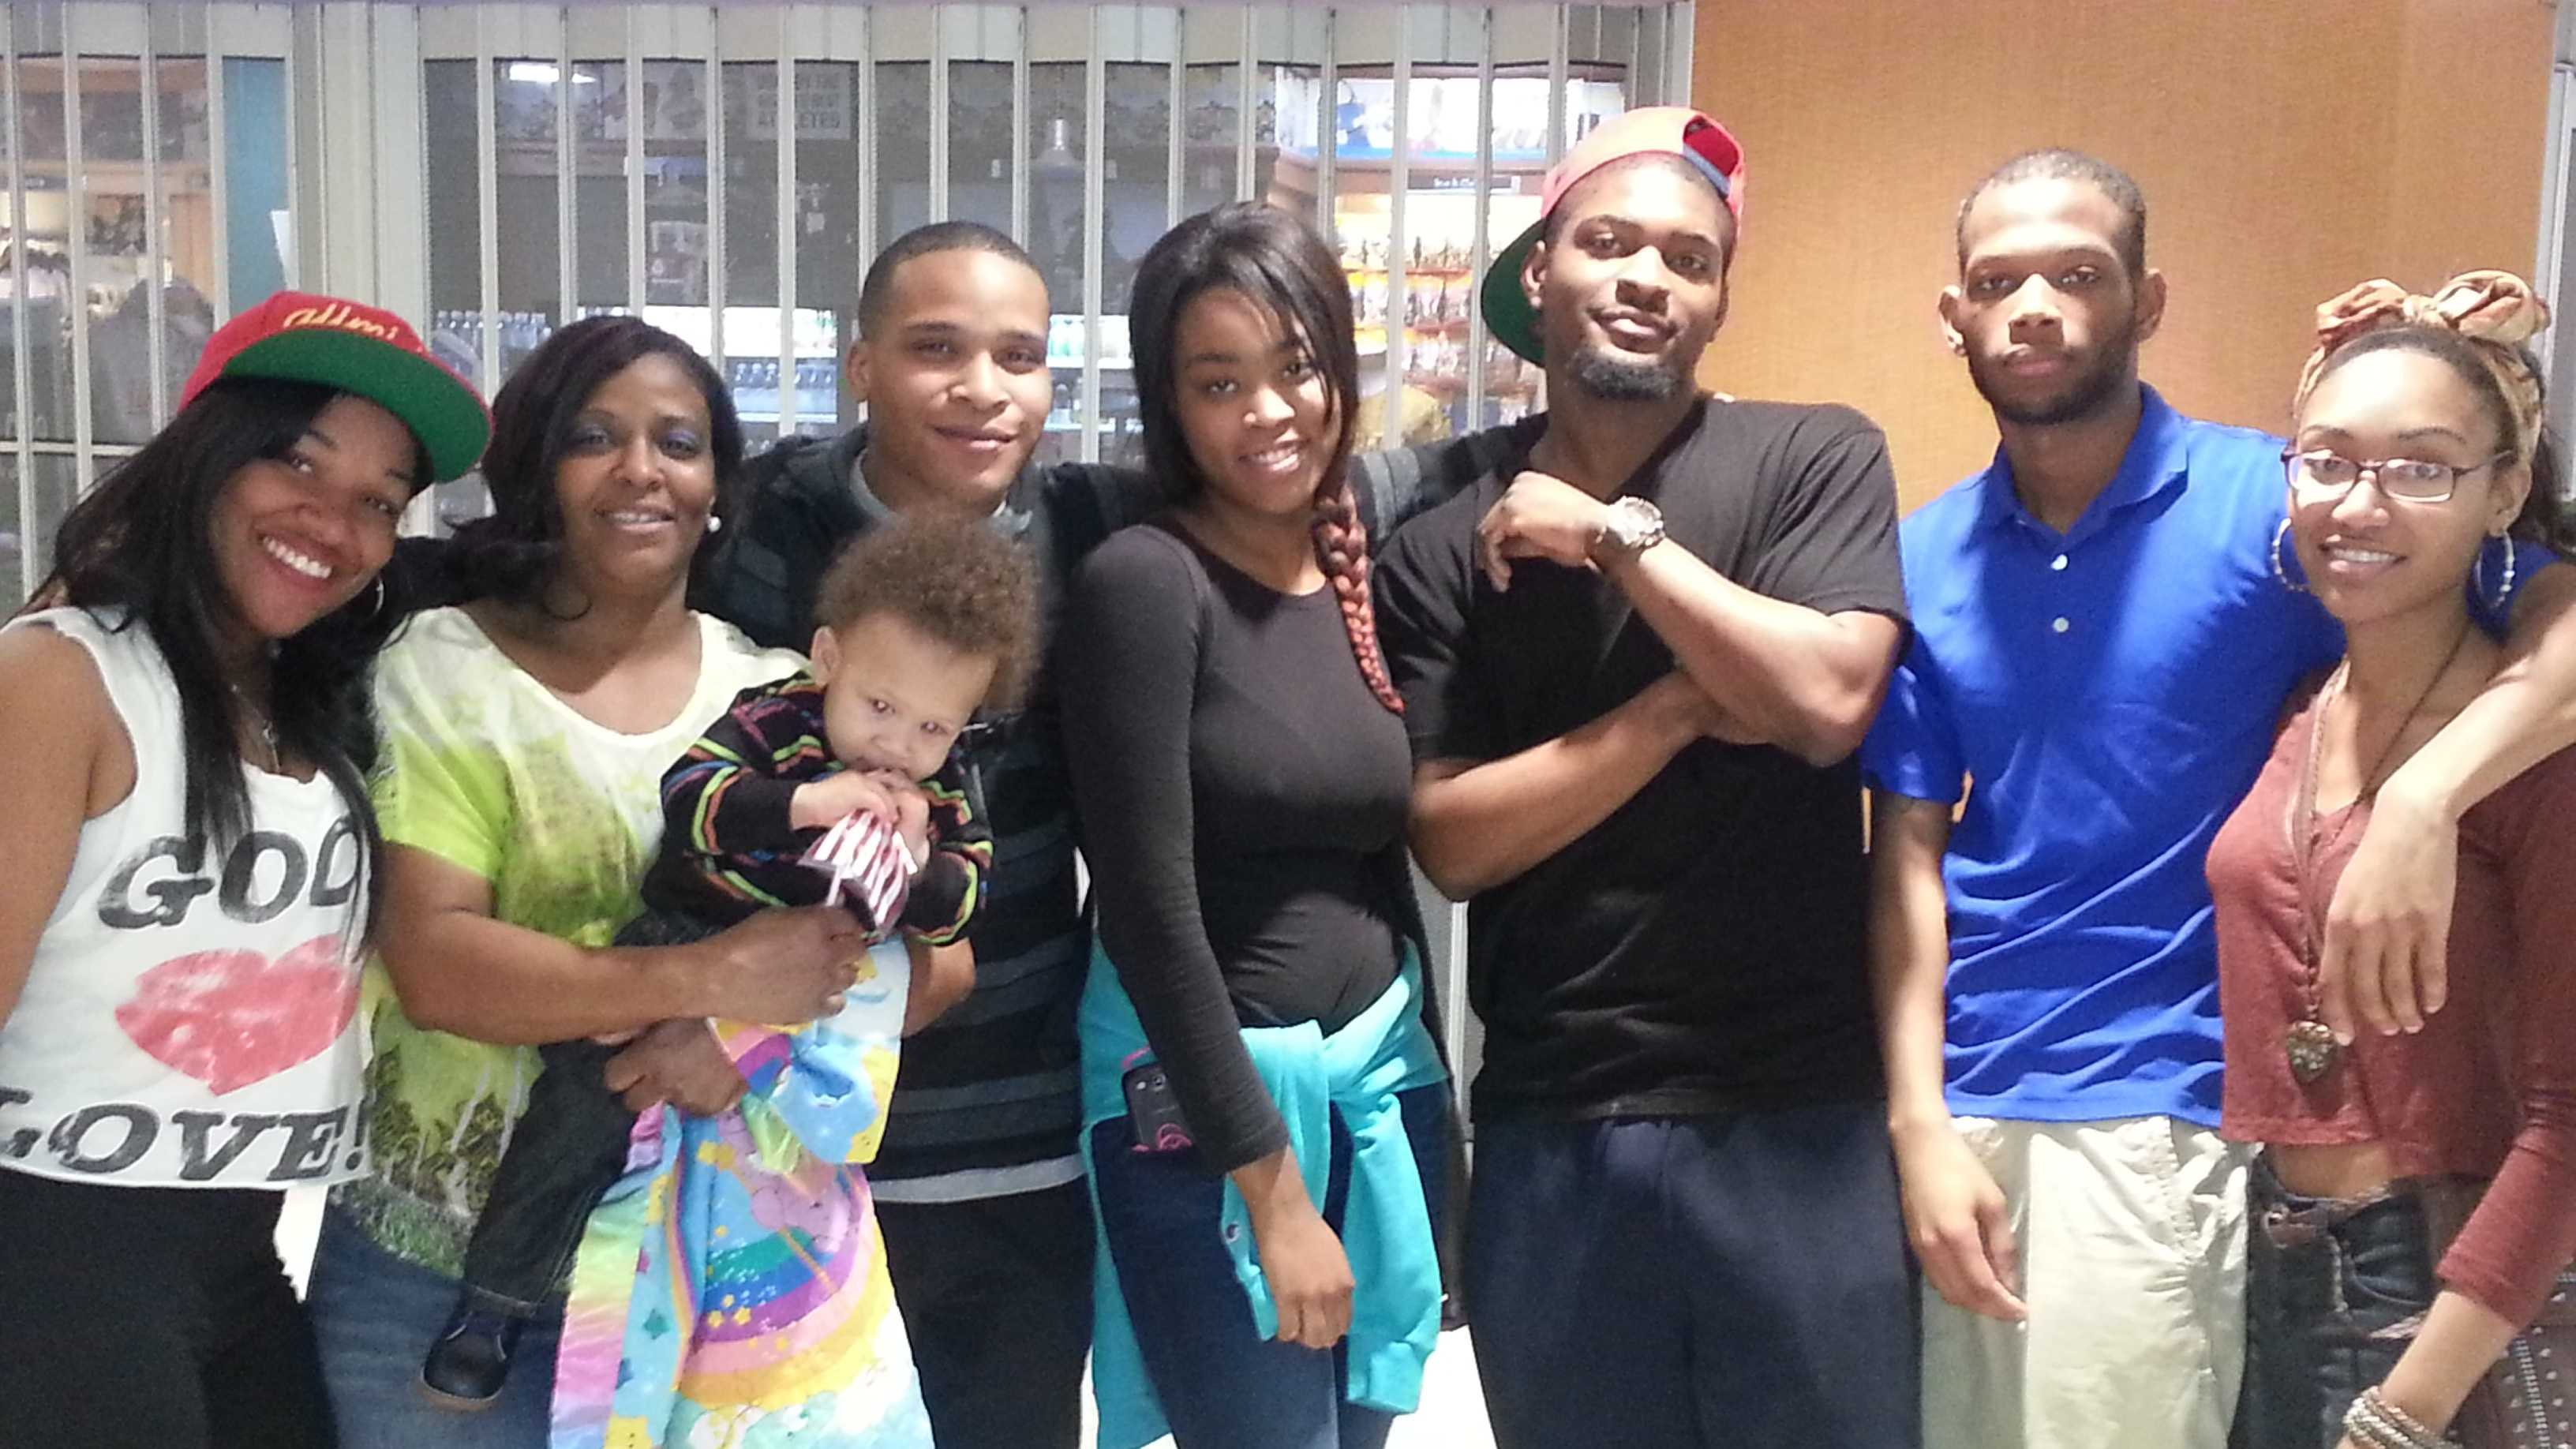 Thursday night, Pfc. Raheim Daniels of New Orleans returned home and greeted his wife, 6-month-old son, mom, sisters and friends.